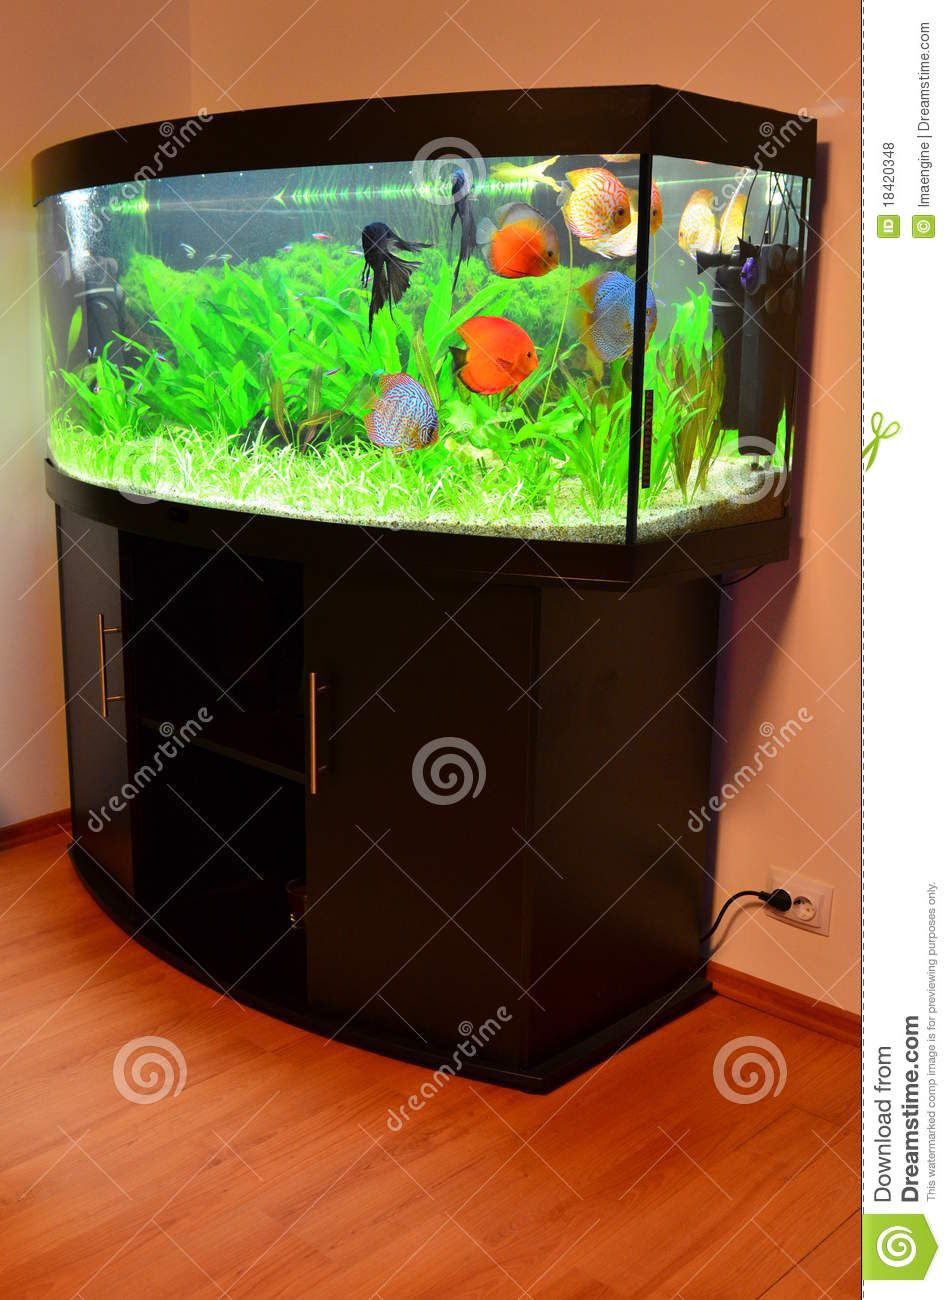 Home Aquarium With Discus Fish And Plants Royalty Free Stock ...